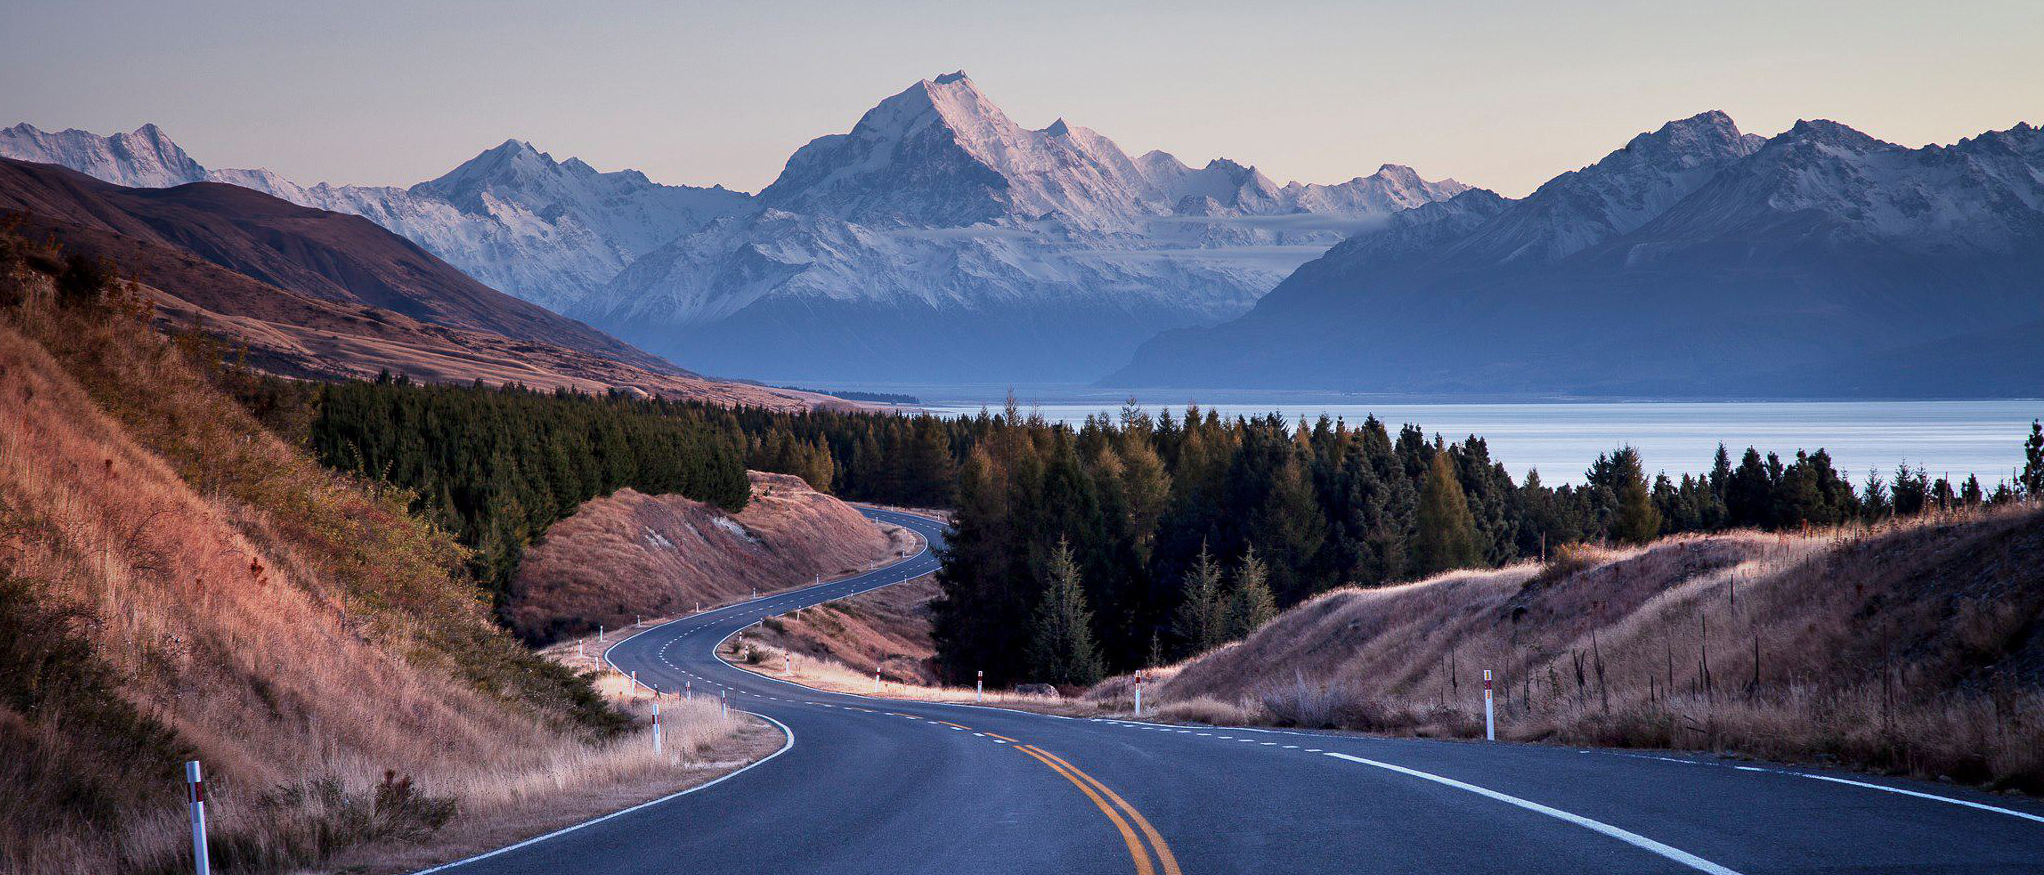 New Zealand Picture: New Zealand Self Drive Tours And Small Group Adventures